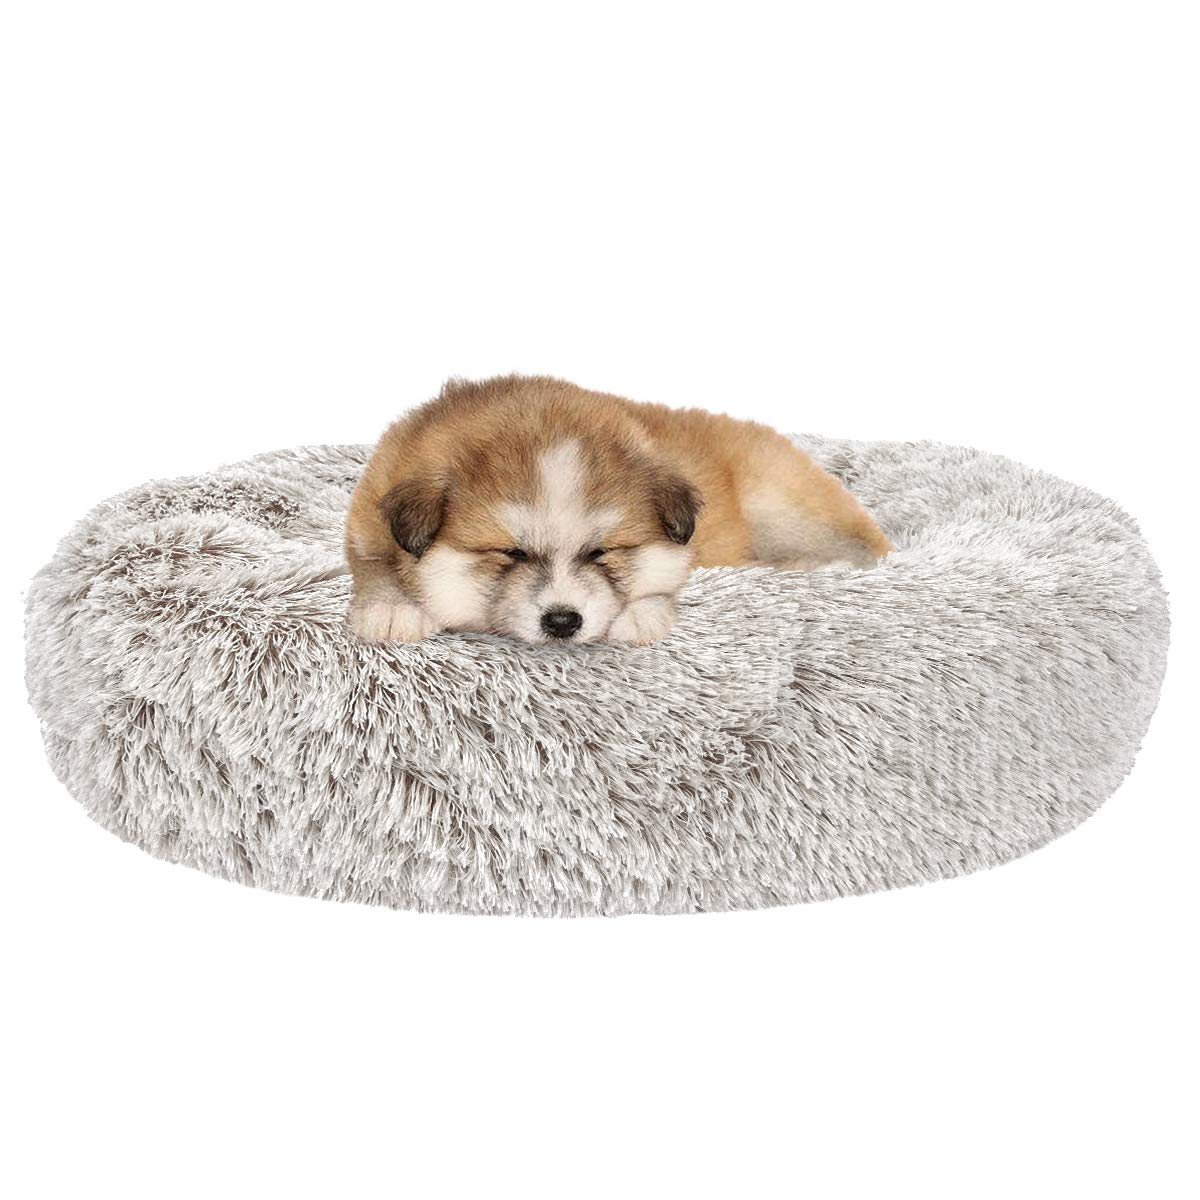 SHU UFANRO Dog Beds for Large Medium Small Dogs Round, Cat Cushion Bed, Calming Pet Beds Cozy Fur Donut Cuddler Improved…